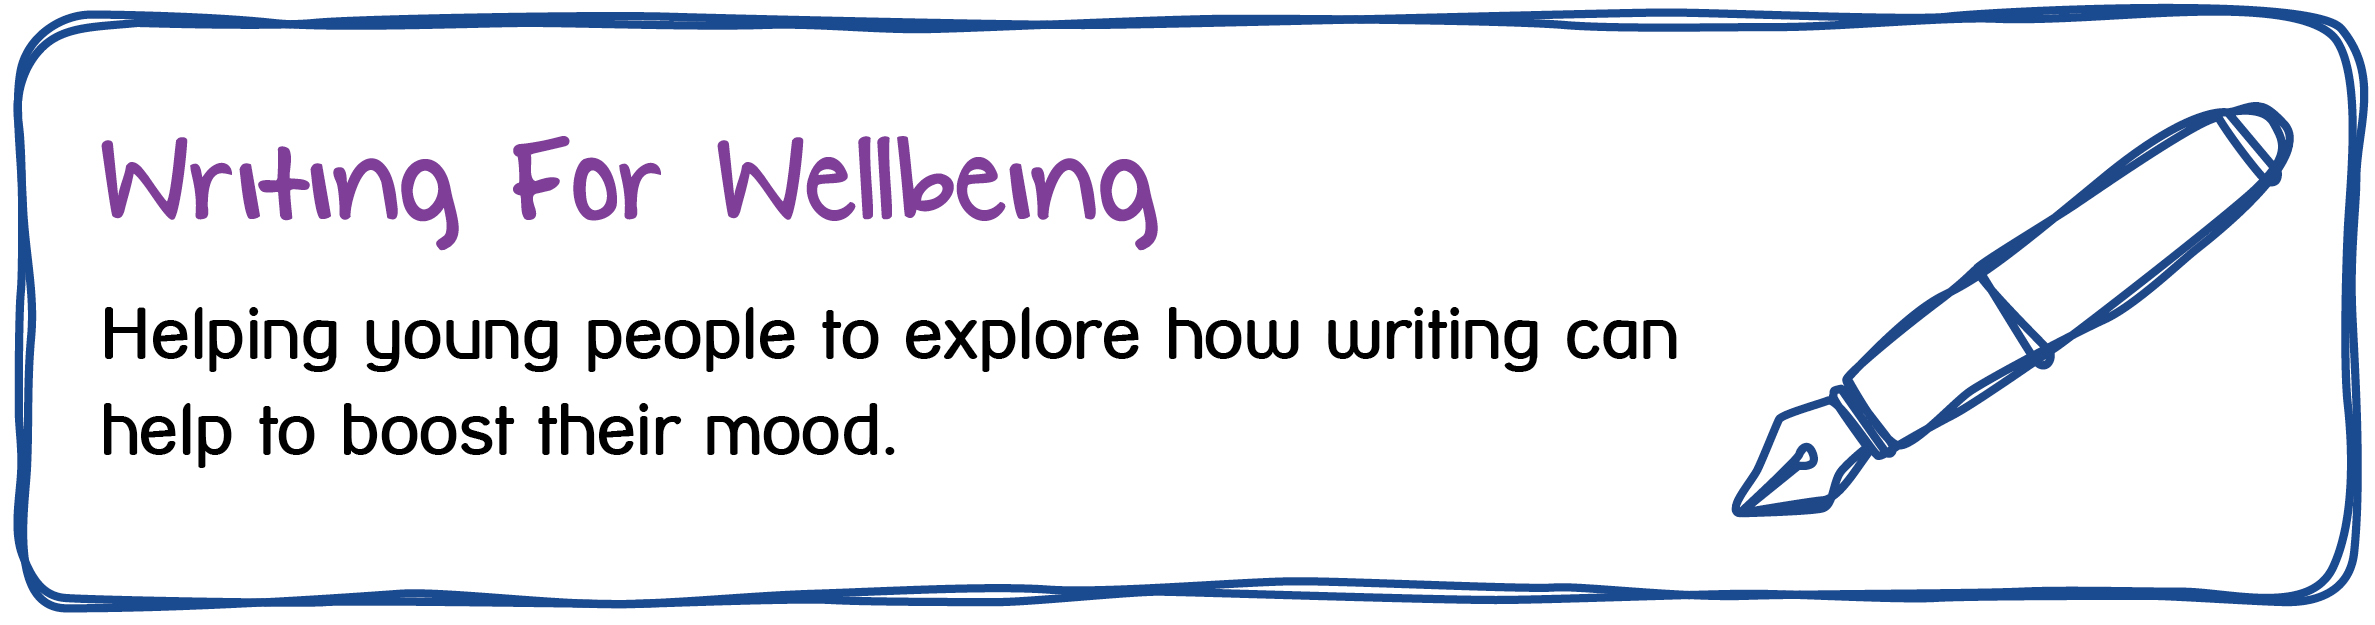 Writing For Wellbeing - Helping young people to explore how writing can help to boost their mood.